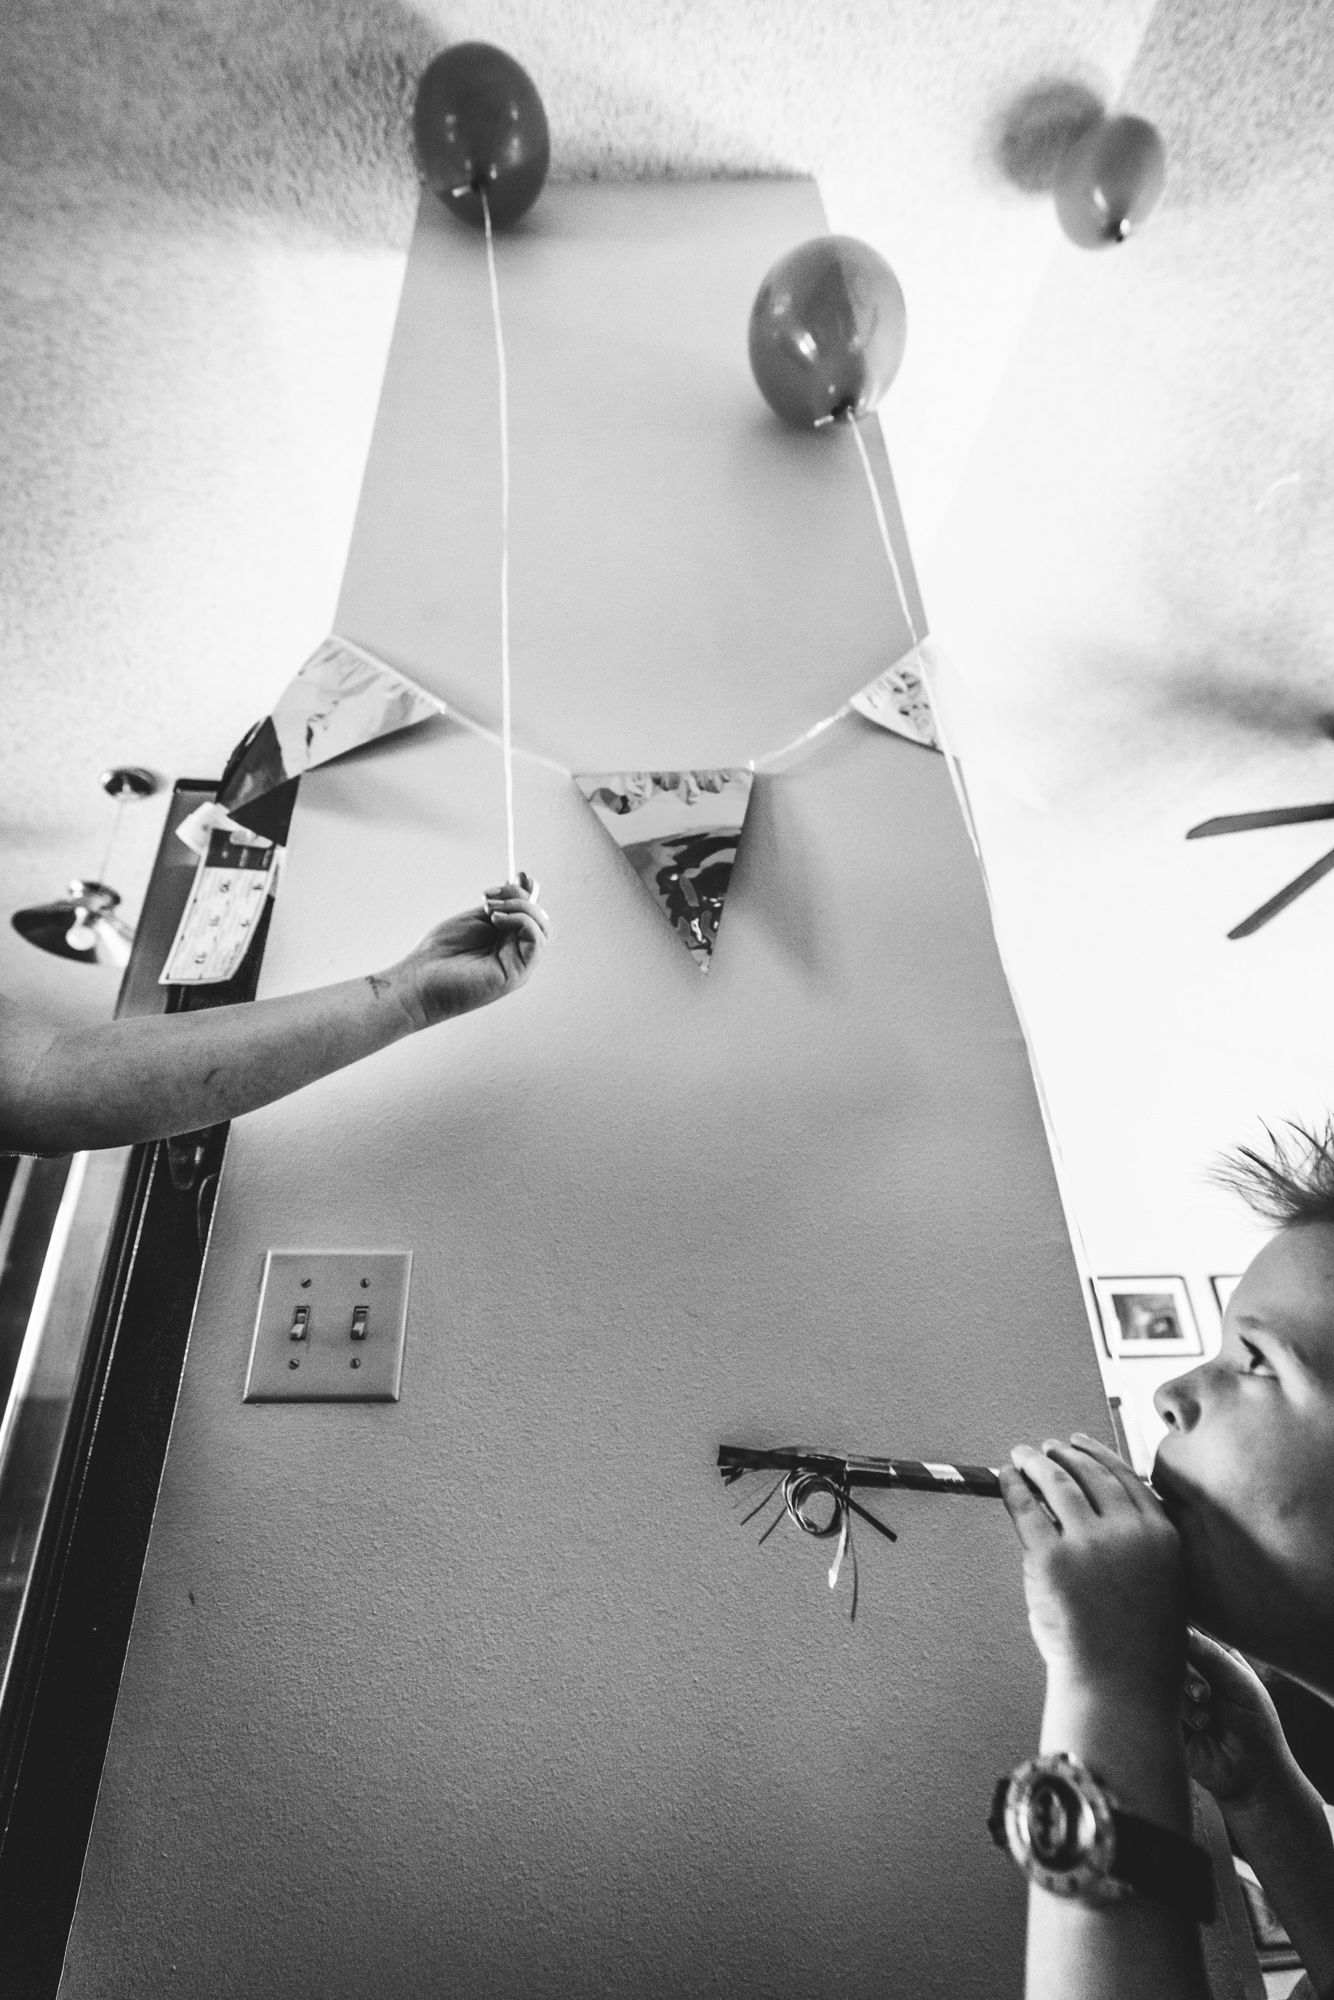 Black and white photo of a woman's arm retrieving a balloon for her son, who's blowing a party blower